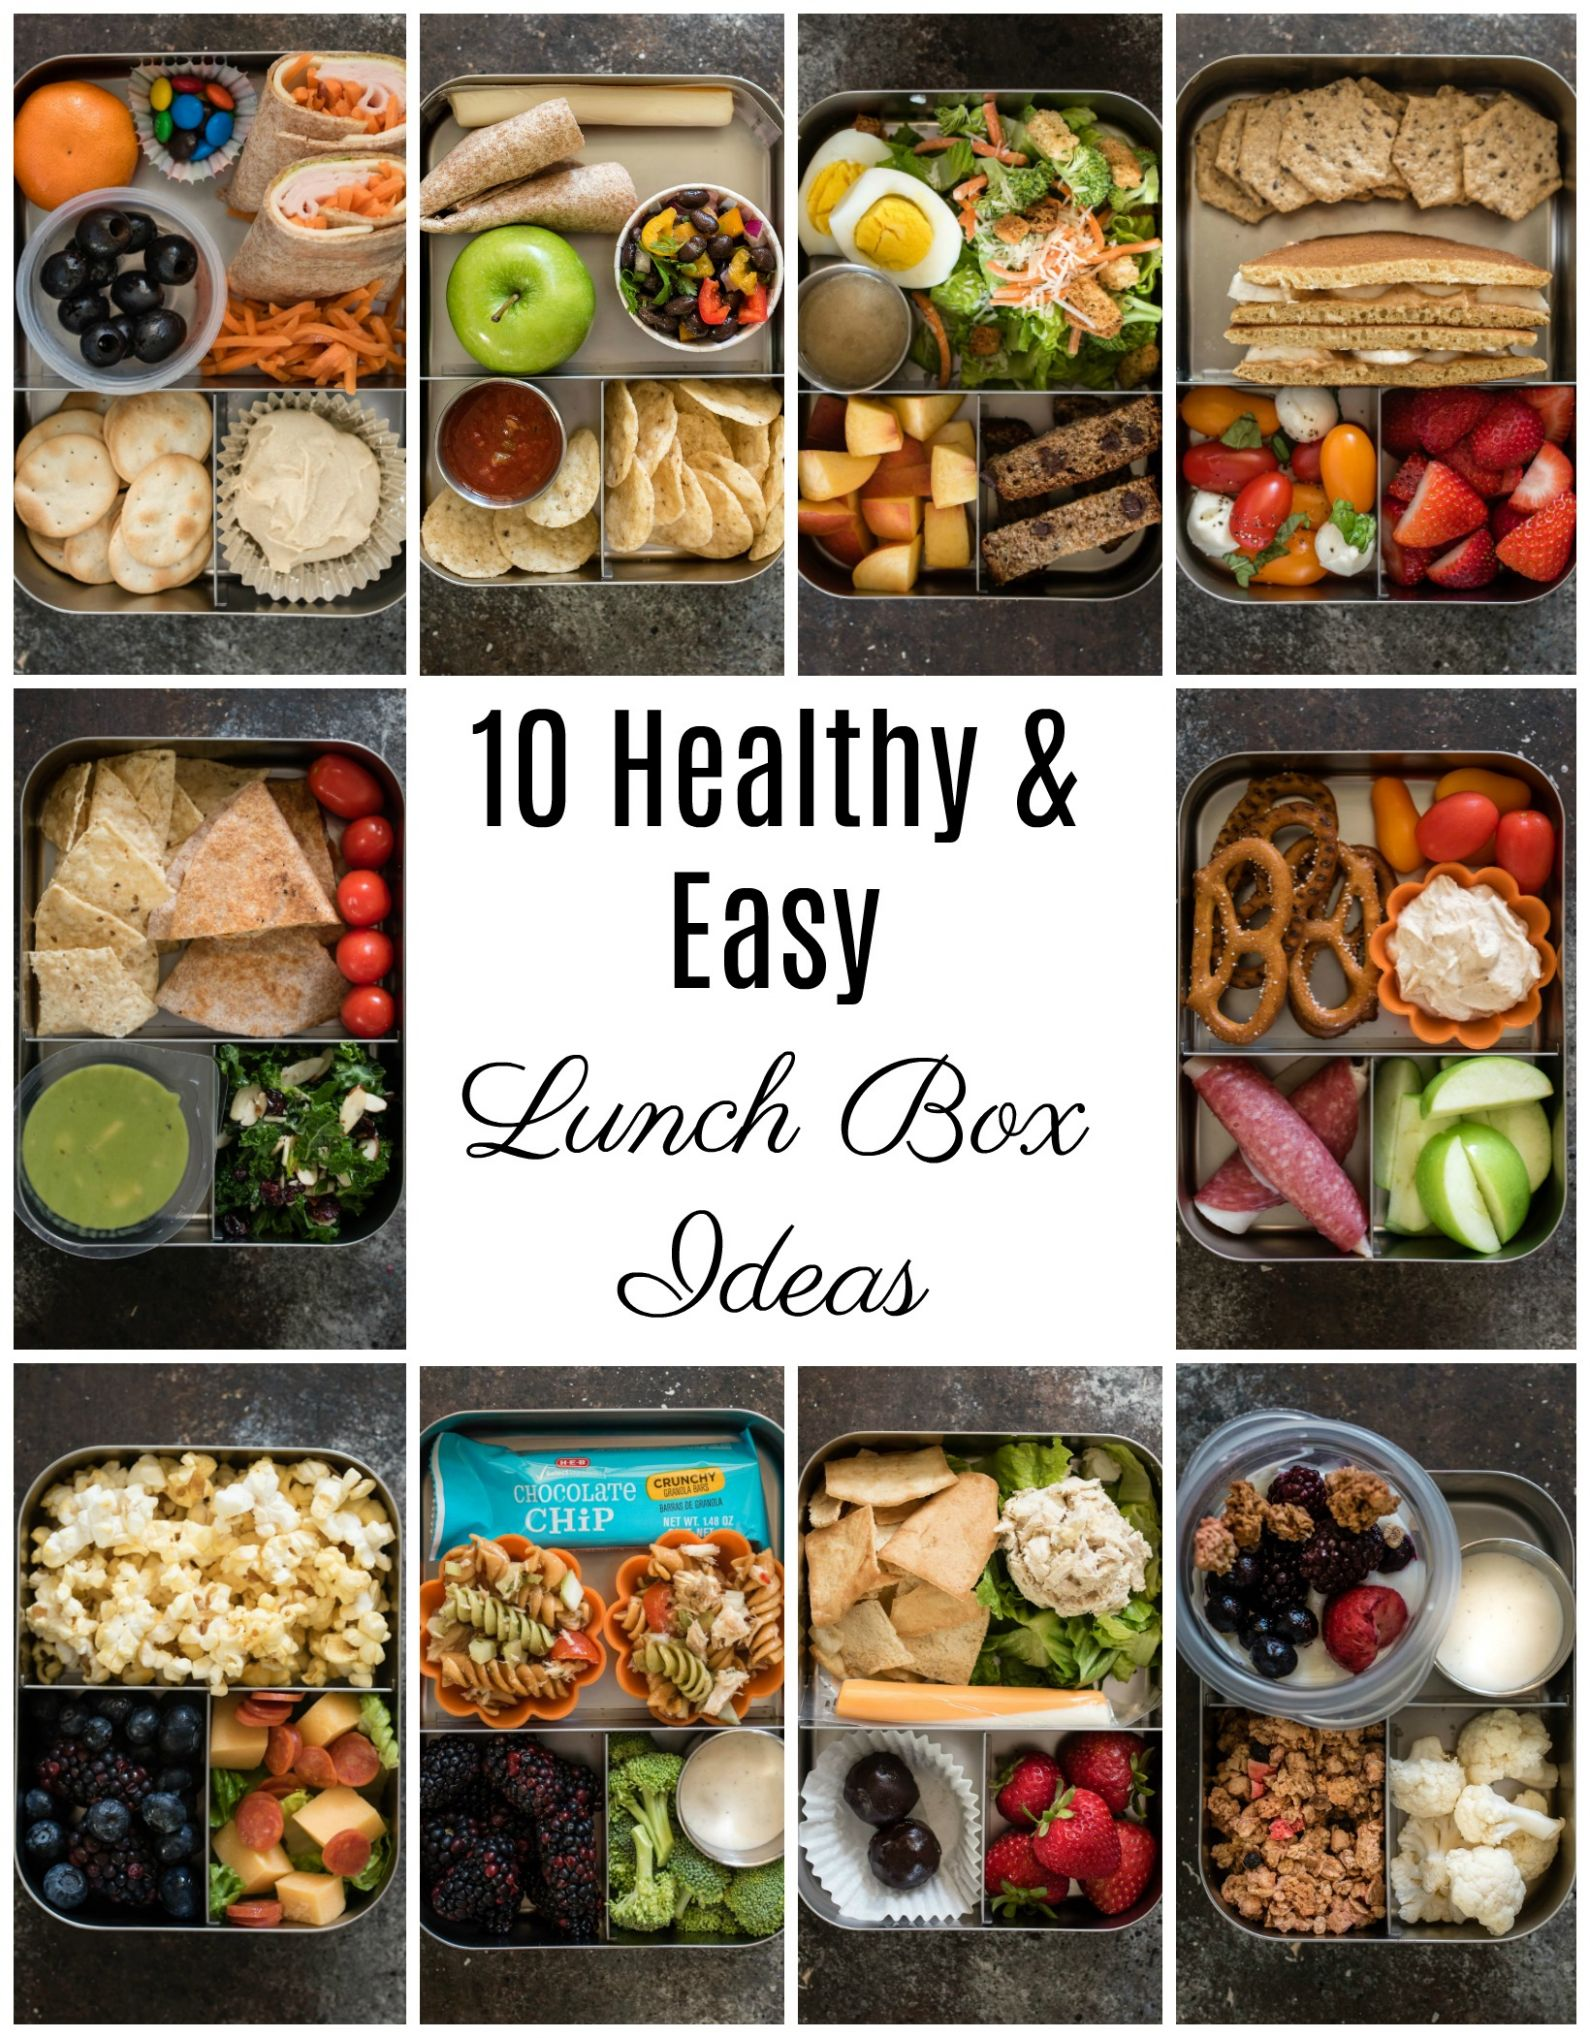 Pancake Sandwich and Healthy LunchBoxes - Sandwich Recipes Lunch